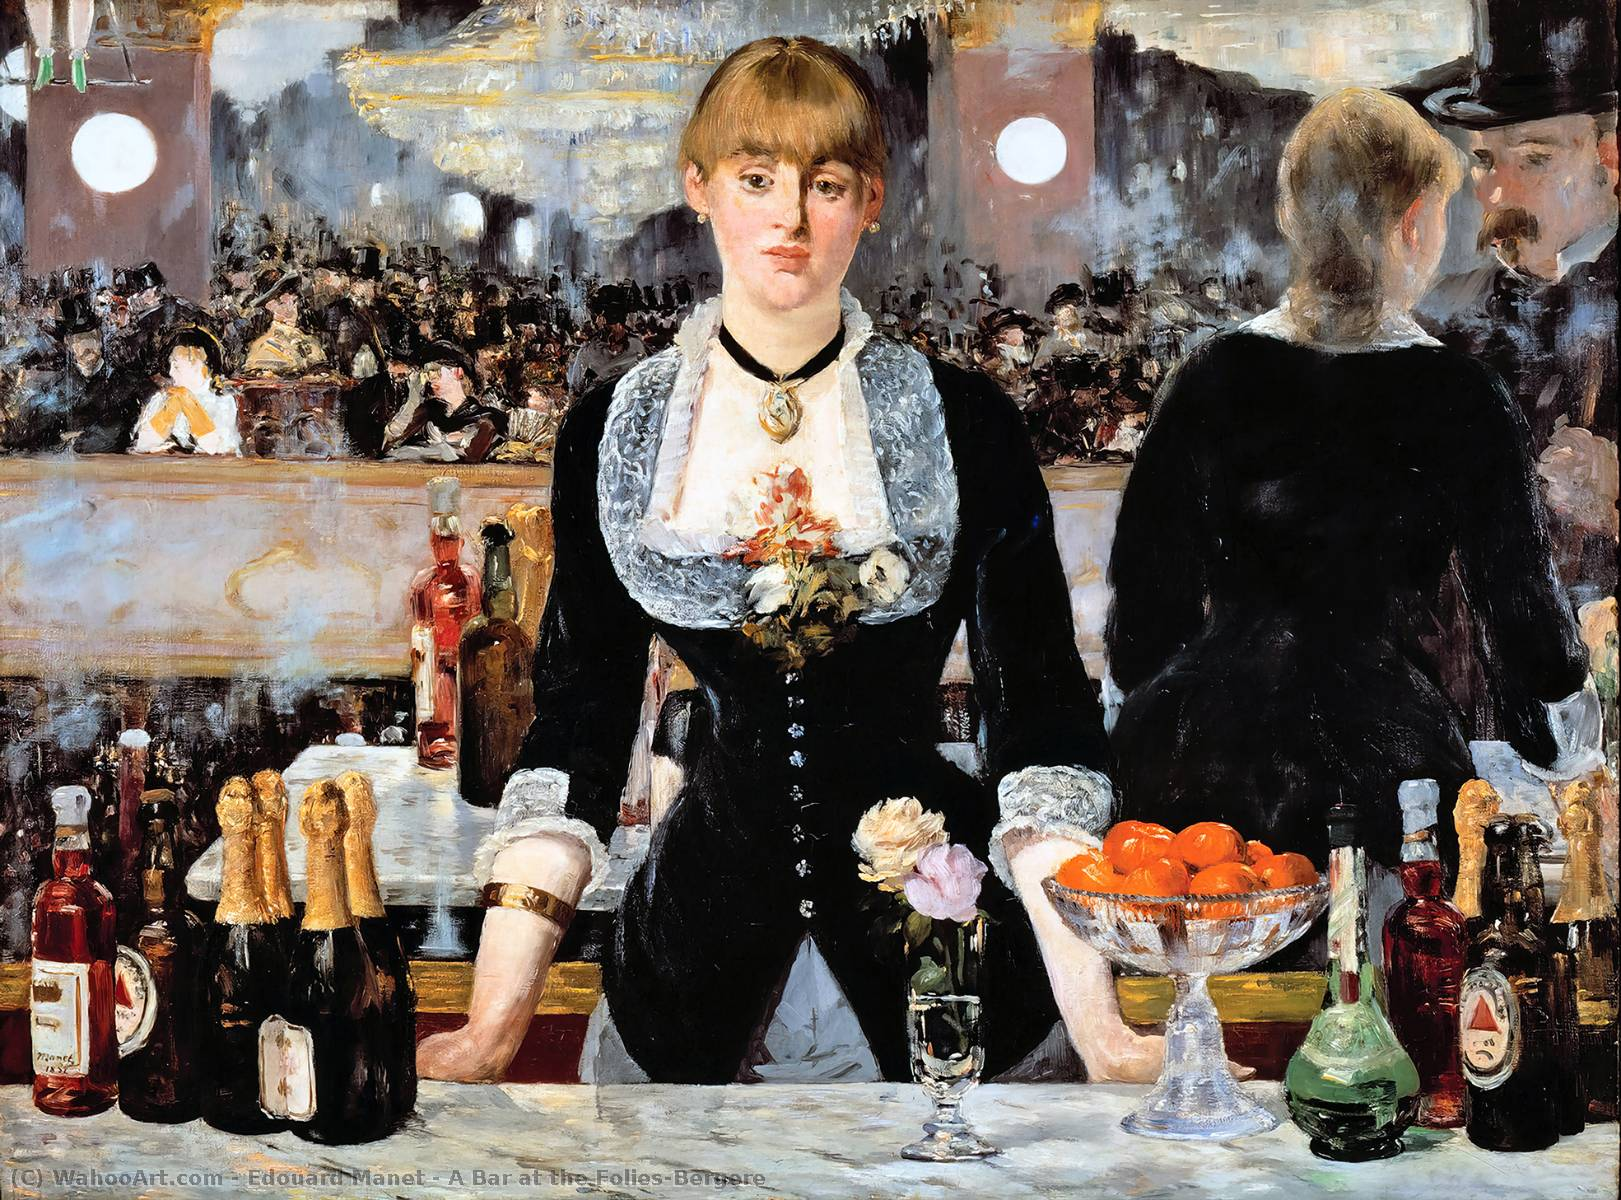 A Bar at the Folies-Bergere, Oil On Canvas by Edouard Manet (1832-1883, France)